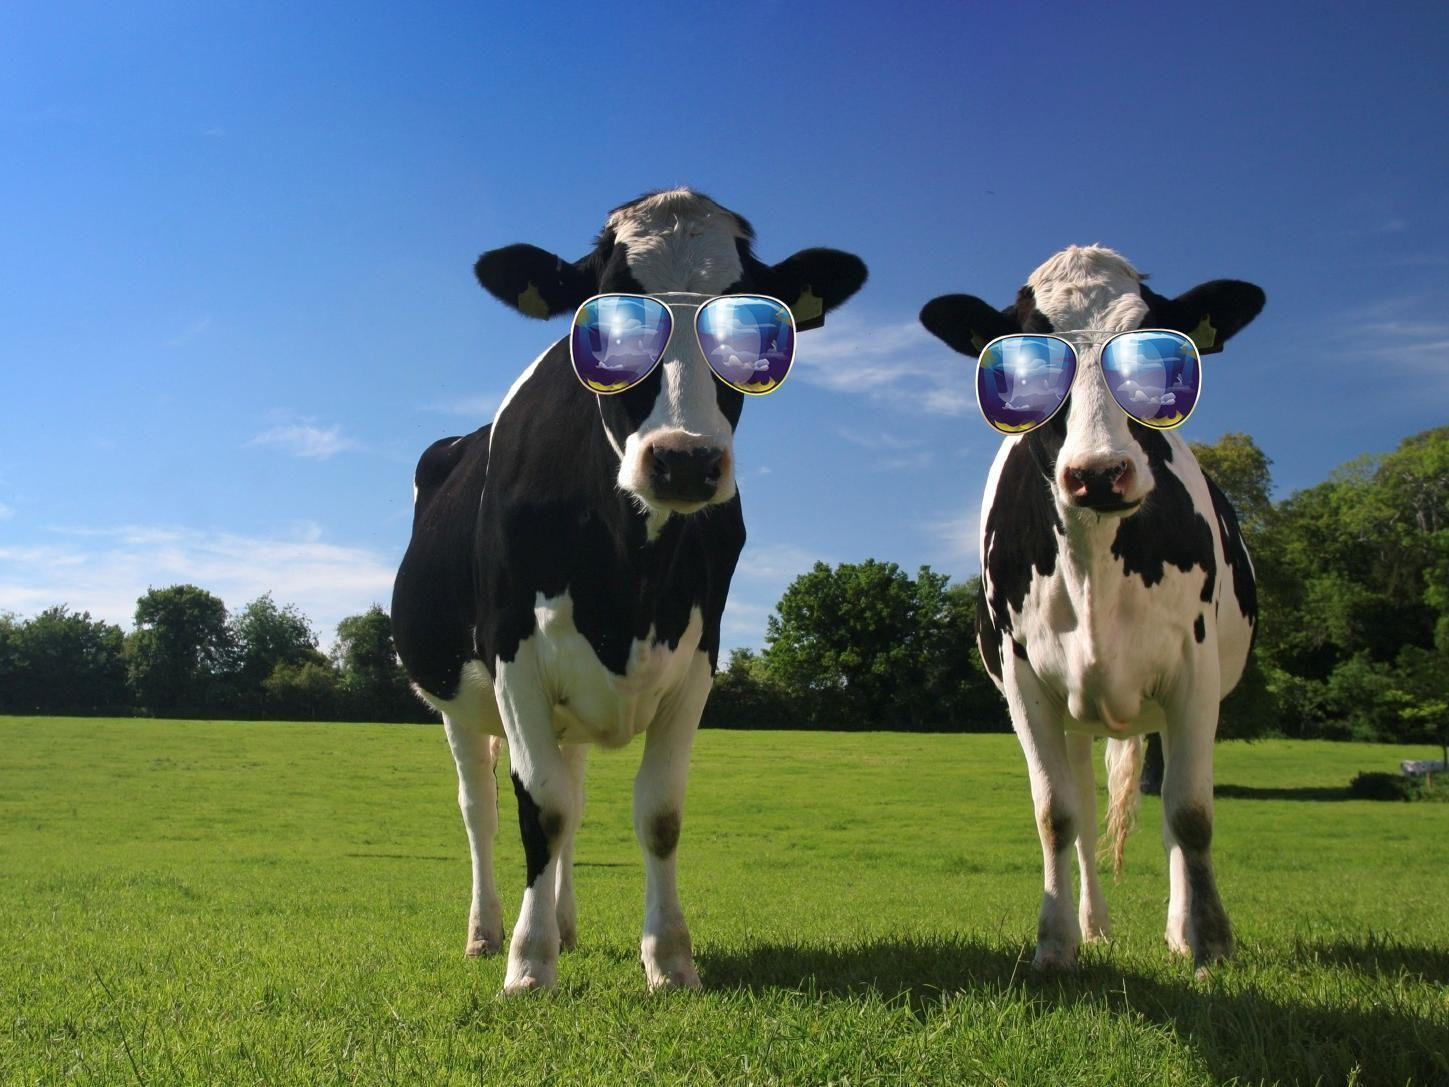 funny cow wallpaper - photo #8